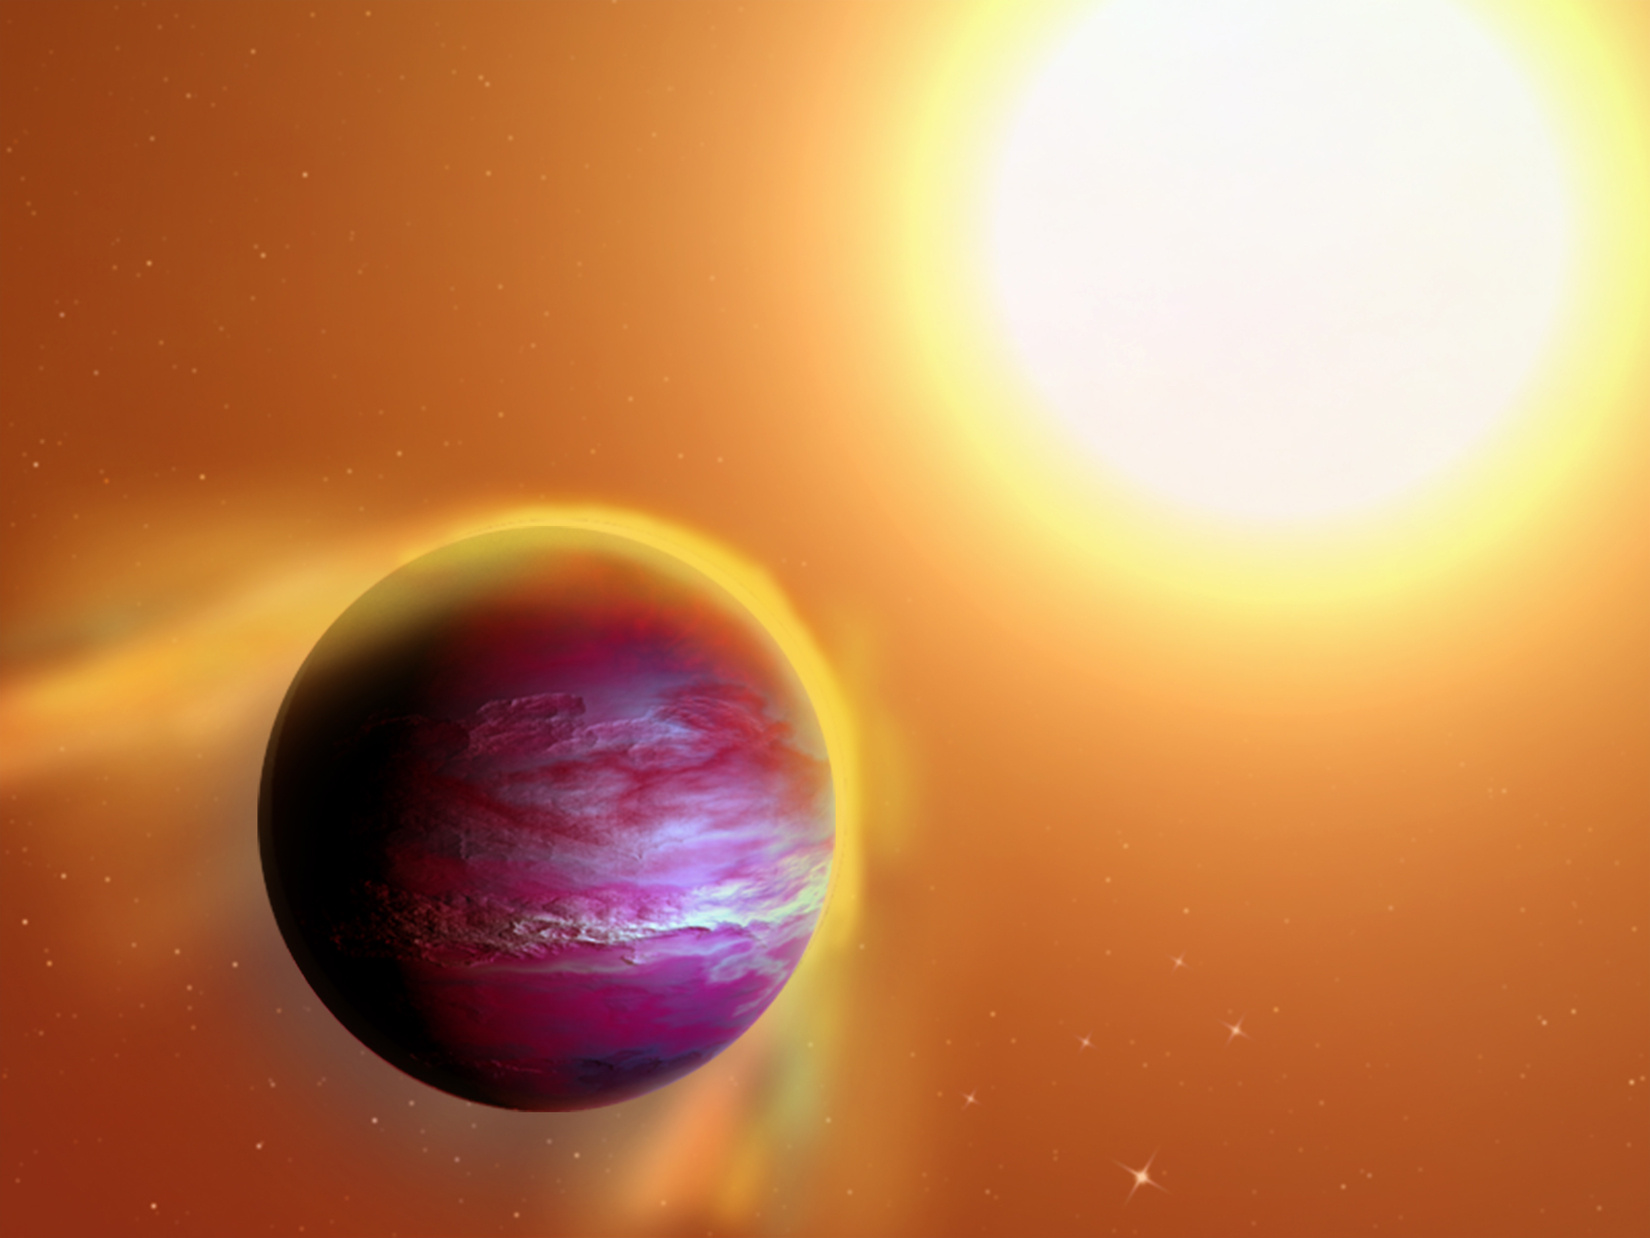 An artist's impression of likely new giant planet PTFO8-8695b, which is believed to orbit a star in the constellation Orion every 11 hours. Gravity from the newborn star appears to be pulling away the outer layers of the Jupiter-like planet. Illustration credit: A. Passwaters/Rice University based on original available under CC license at https://commons.wikimedia.org/wiki/File:Kepler-70b.png